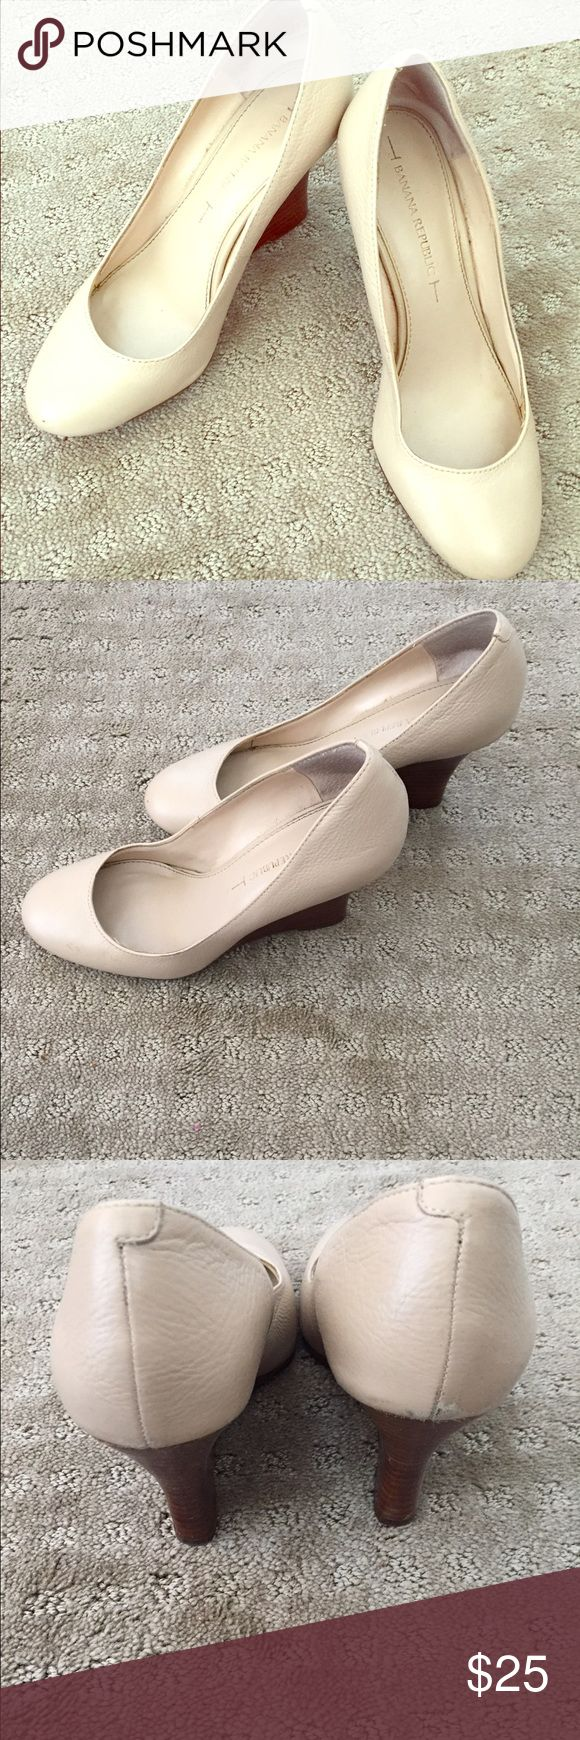 Banana Republic cream wedges Banana republic cream wedges. Wooden wedge. In good condition. Banana Republic Shoes Wedges